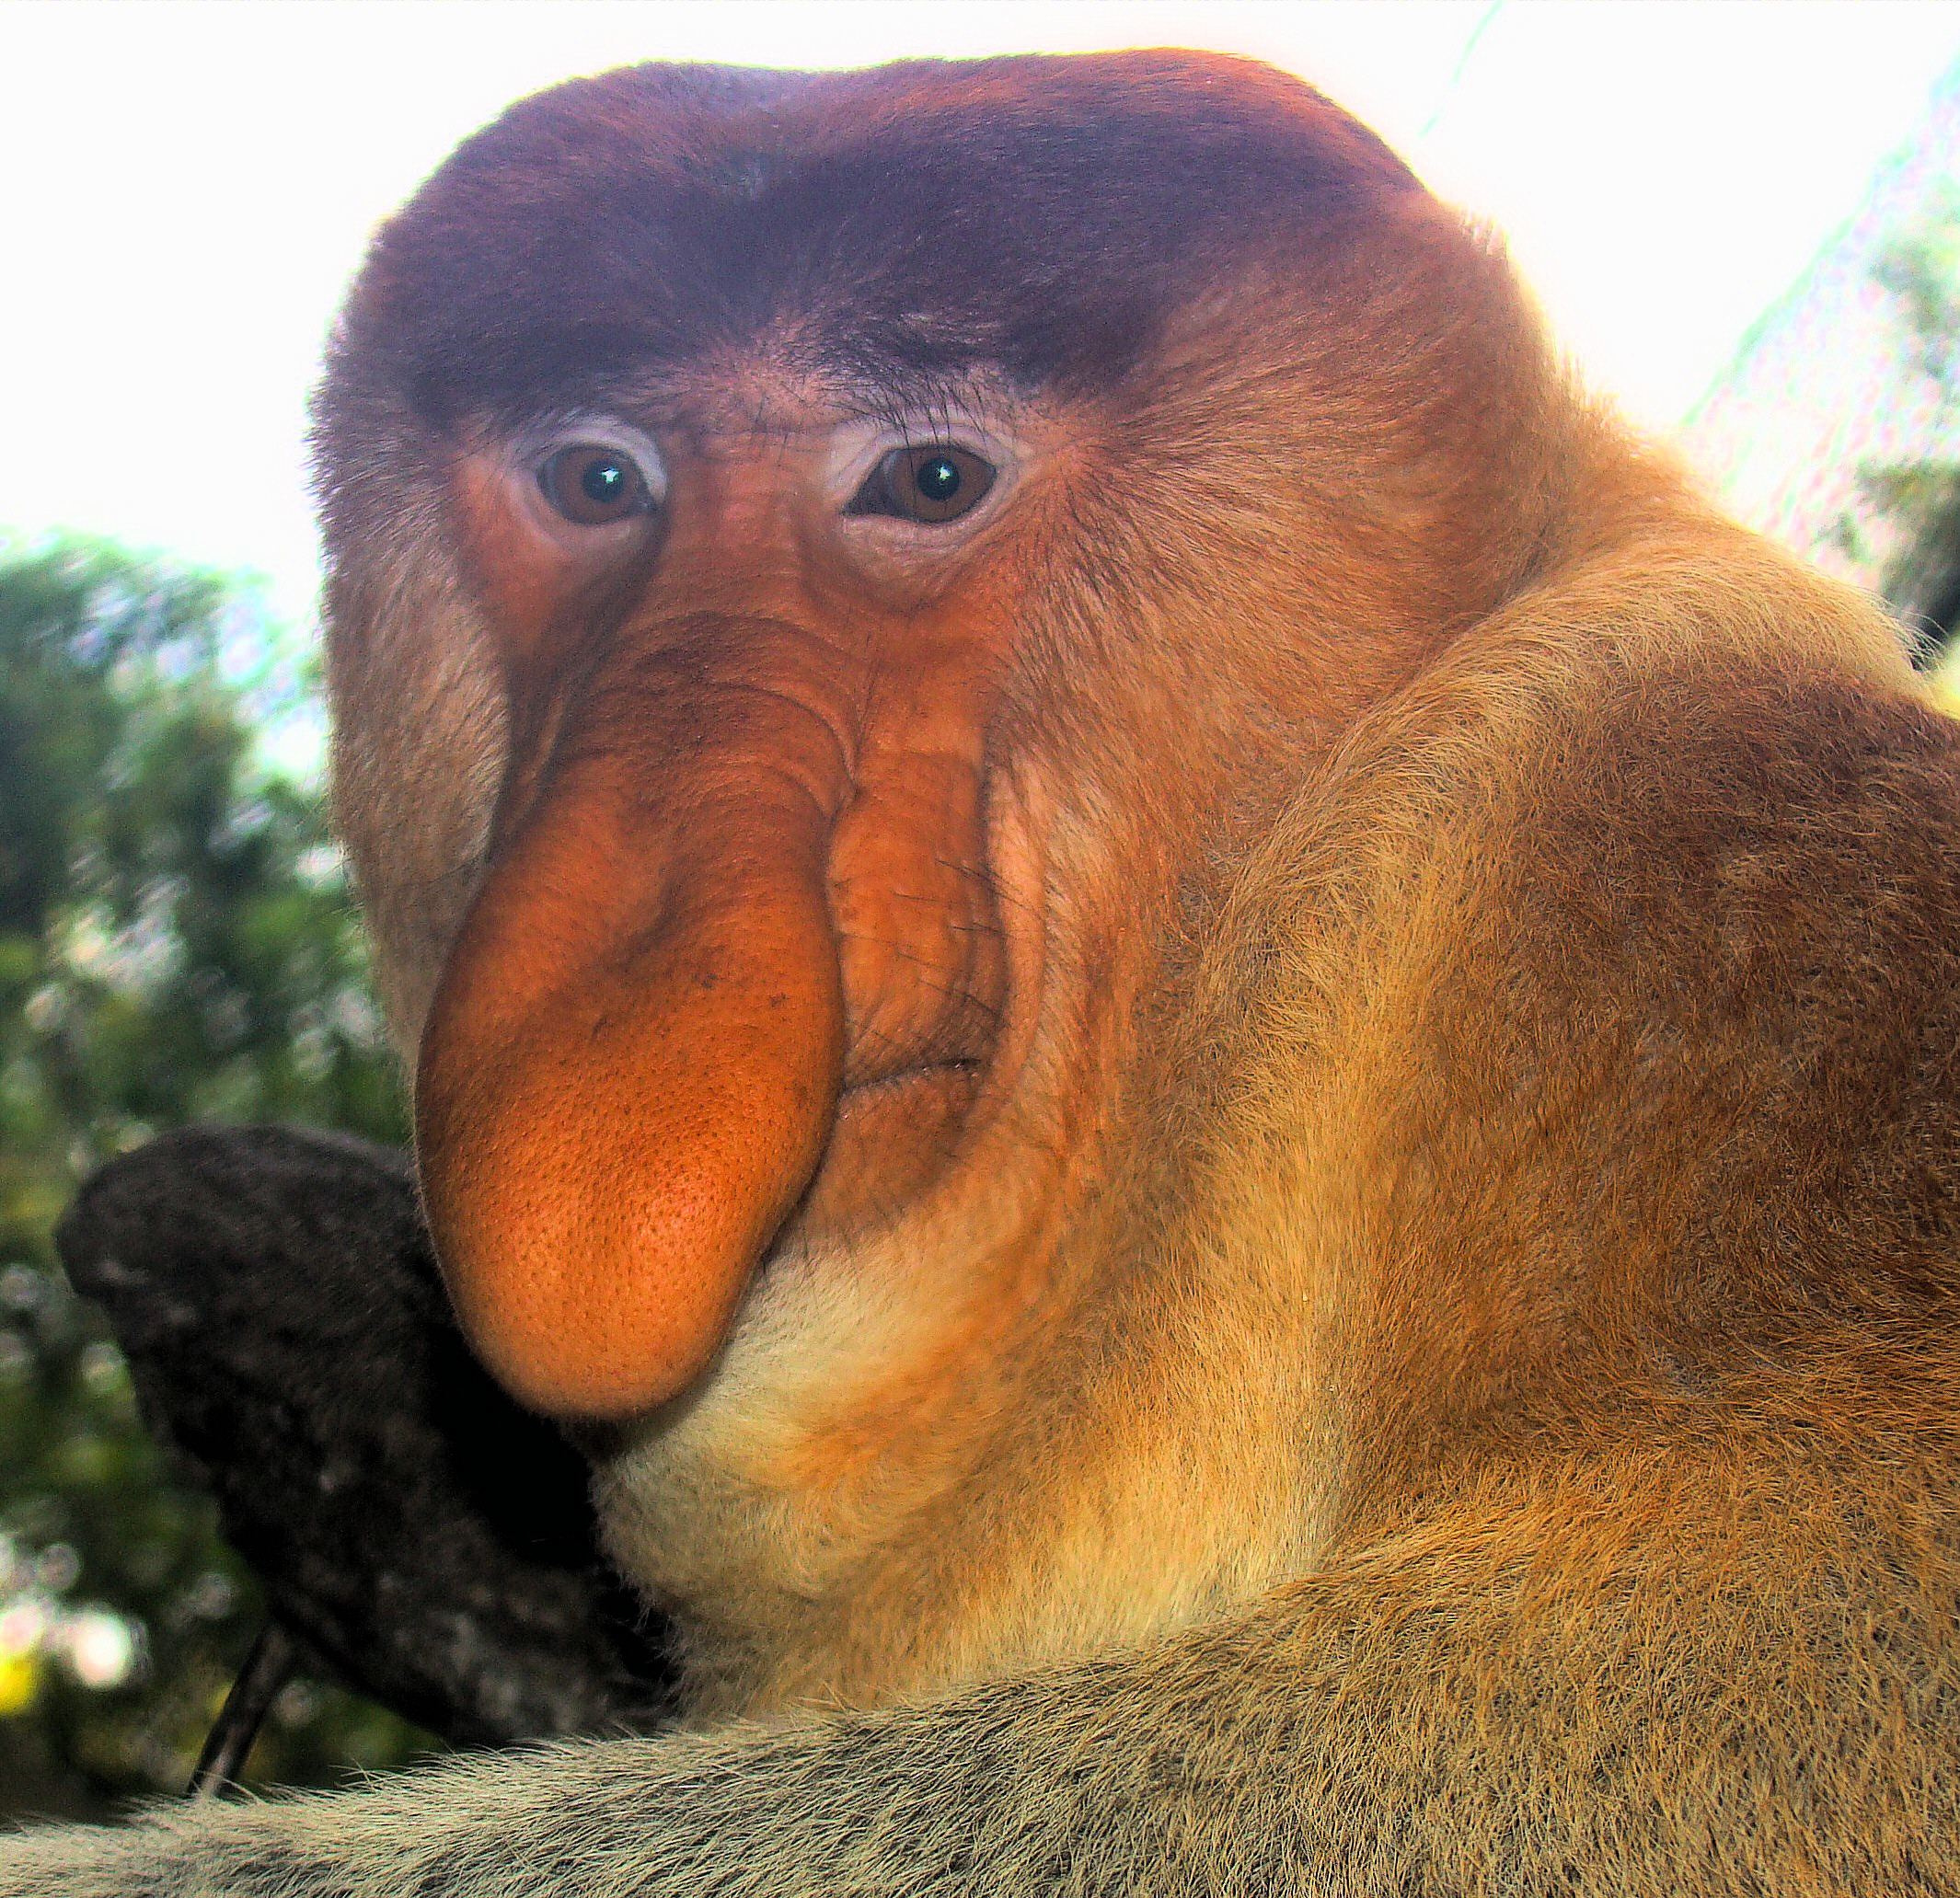 https://upload.wikimedia.org/wikipedia/commons/0/09/Portrait_of_a_Proboscis_Monkey.jpg